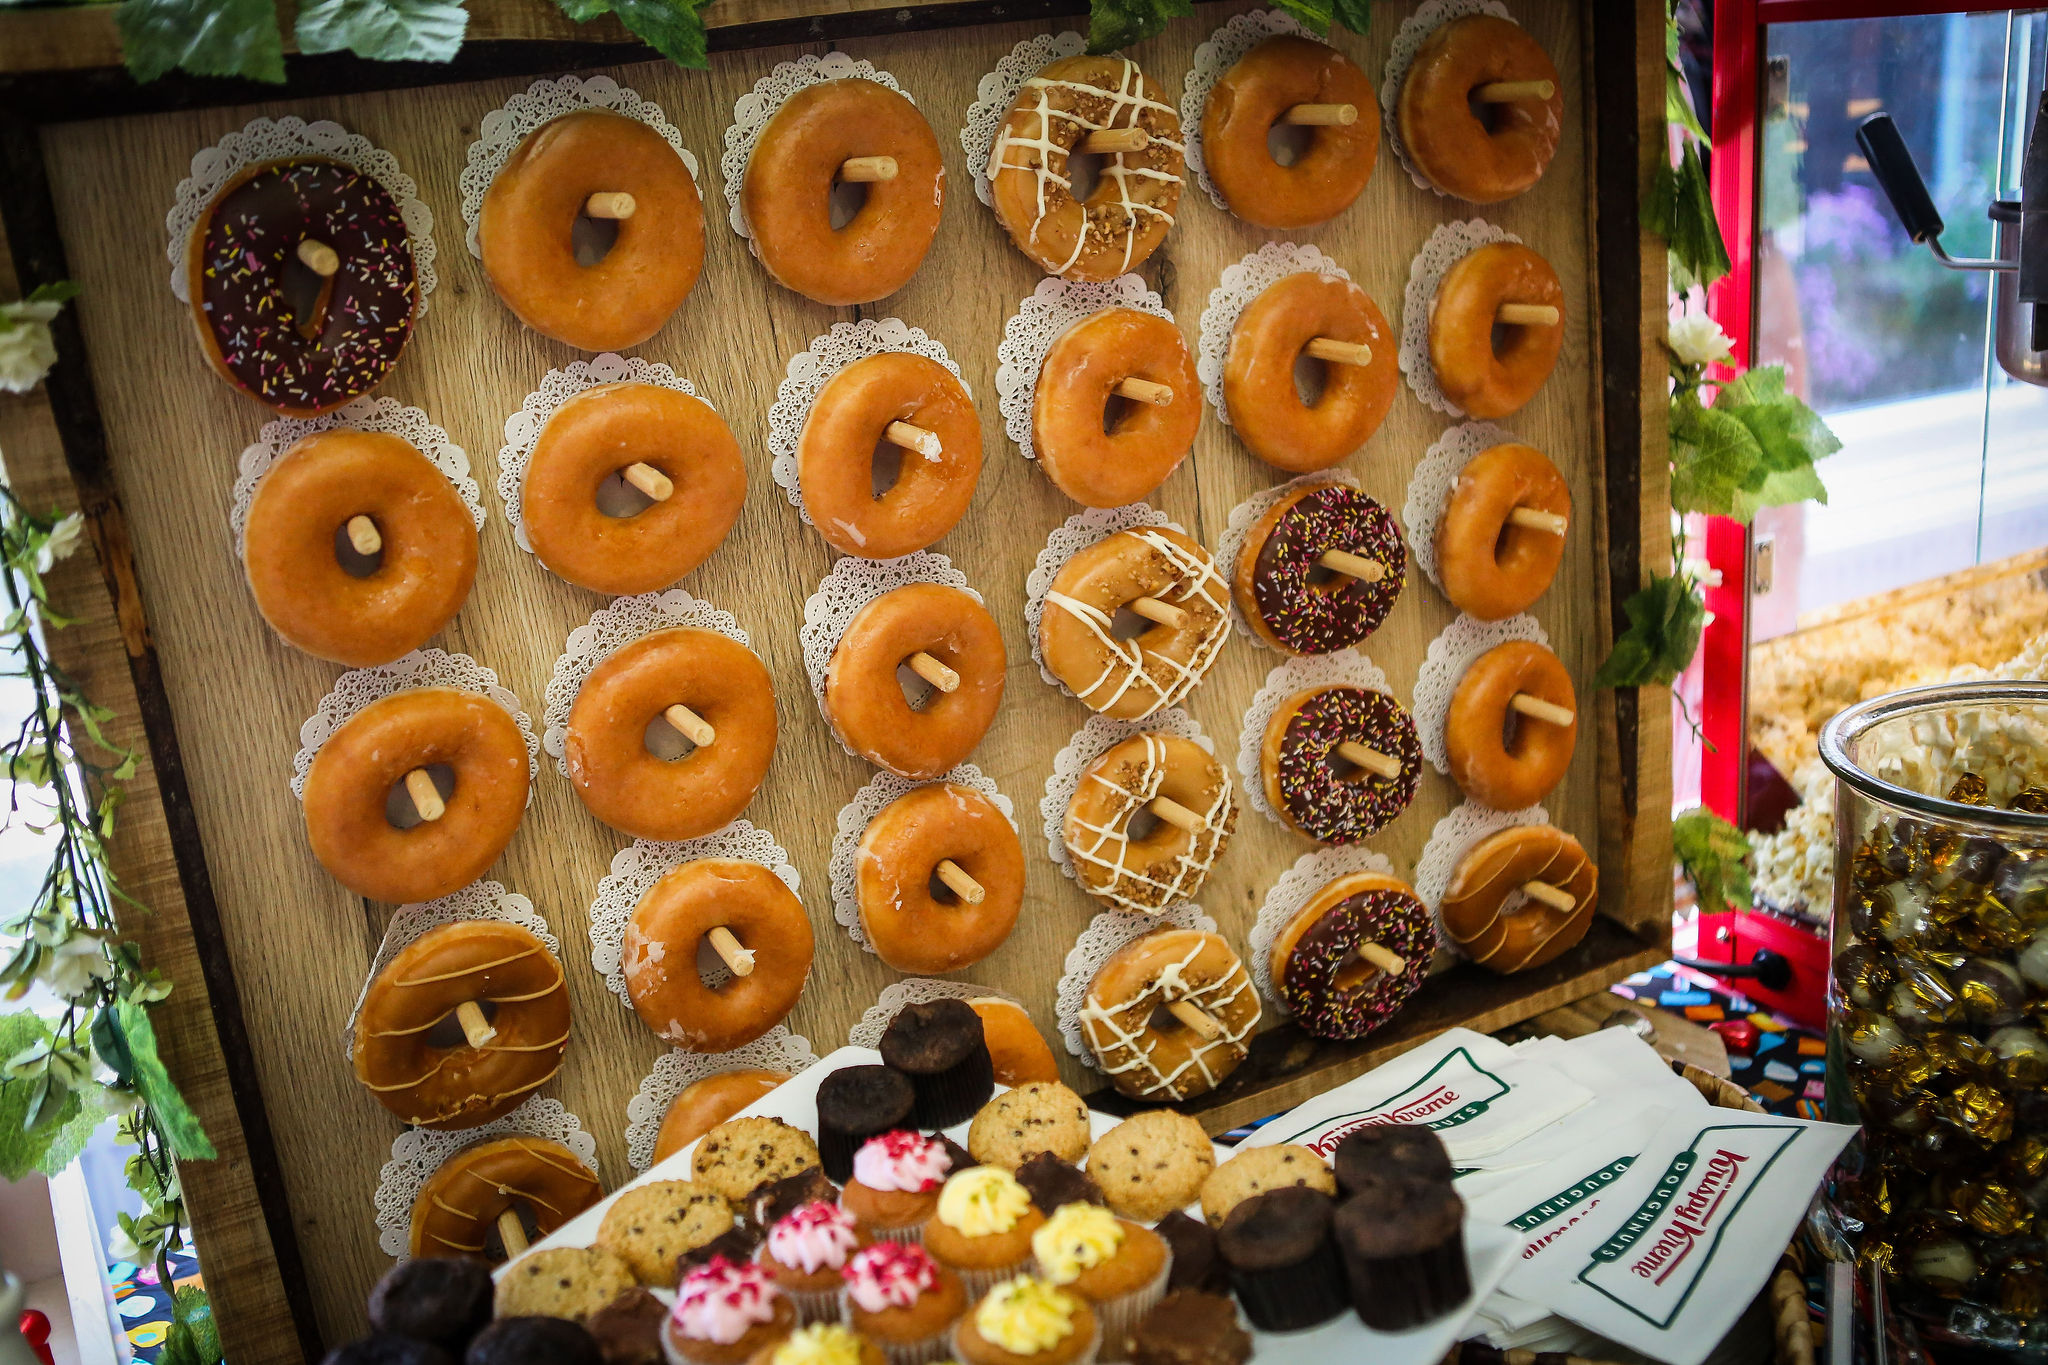 Harriet&Rhys Wedding - donut wall with krispy kremes and doilies!